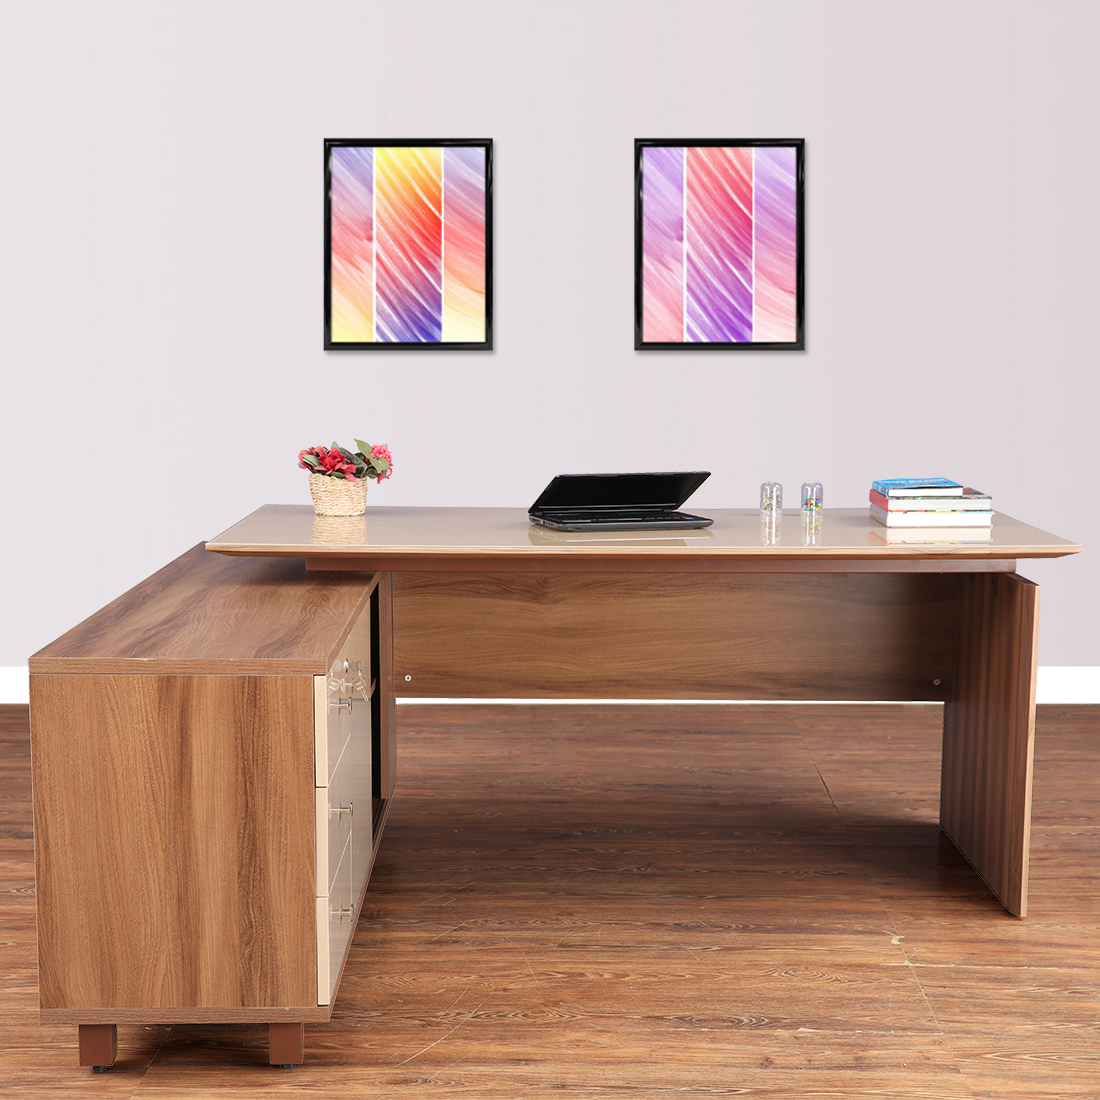 Chief Engineered Wood Office Table in Walnut Bronze & Capuchino Colour by HomeTown